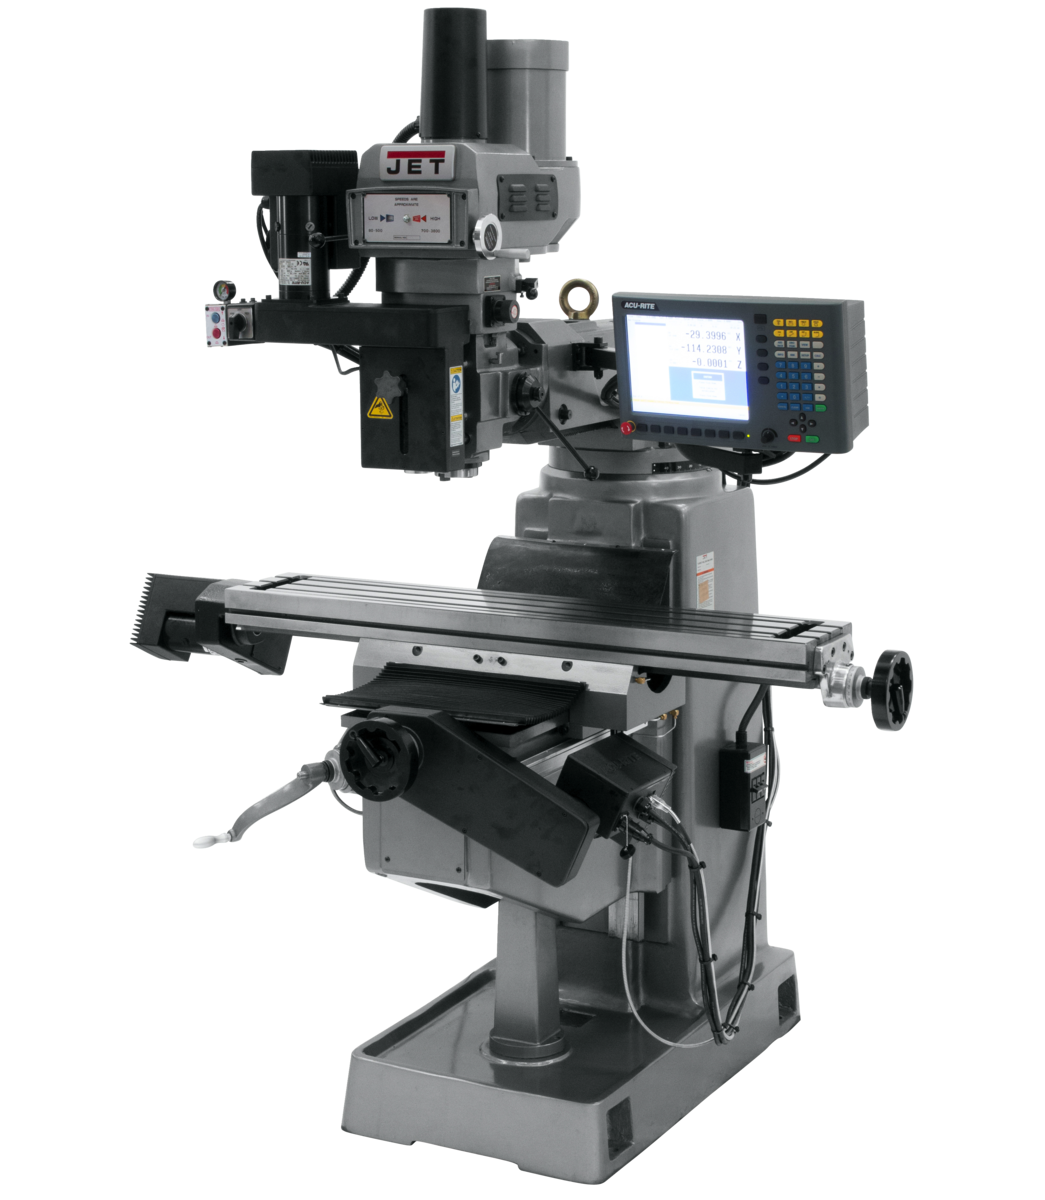 JTM-4VS Mill With 3-Axis ACU-RITE G-2 MILLPWR CNC With Air Powered Draw Bar